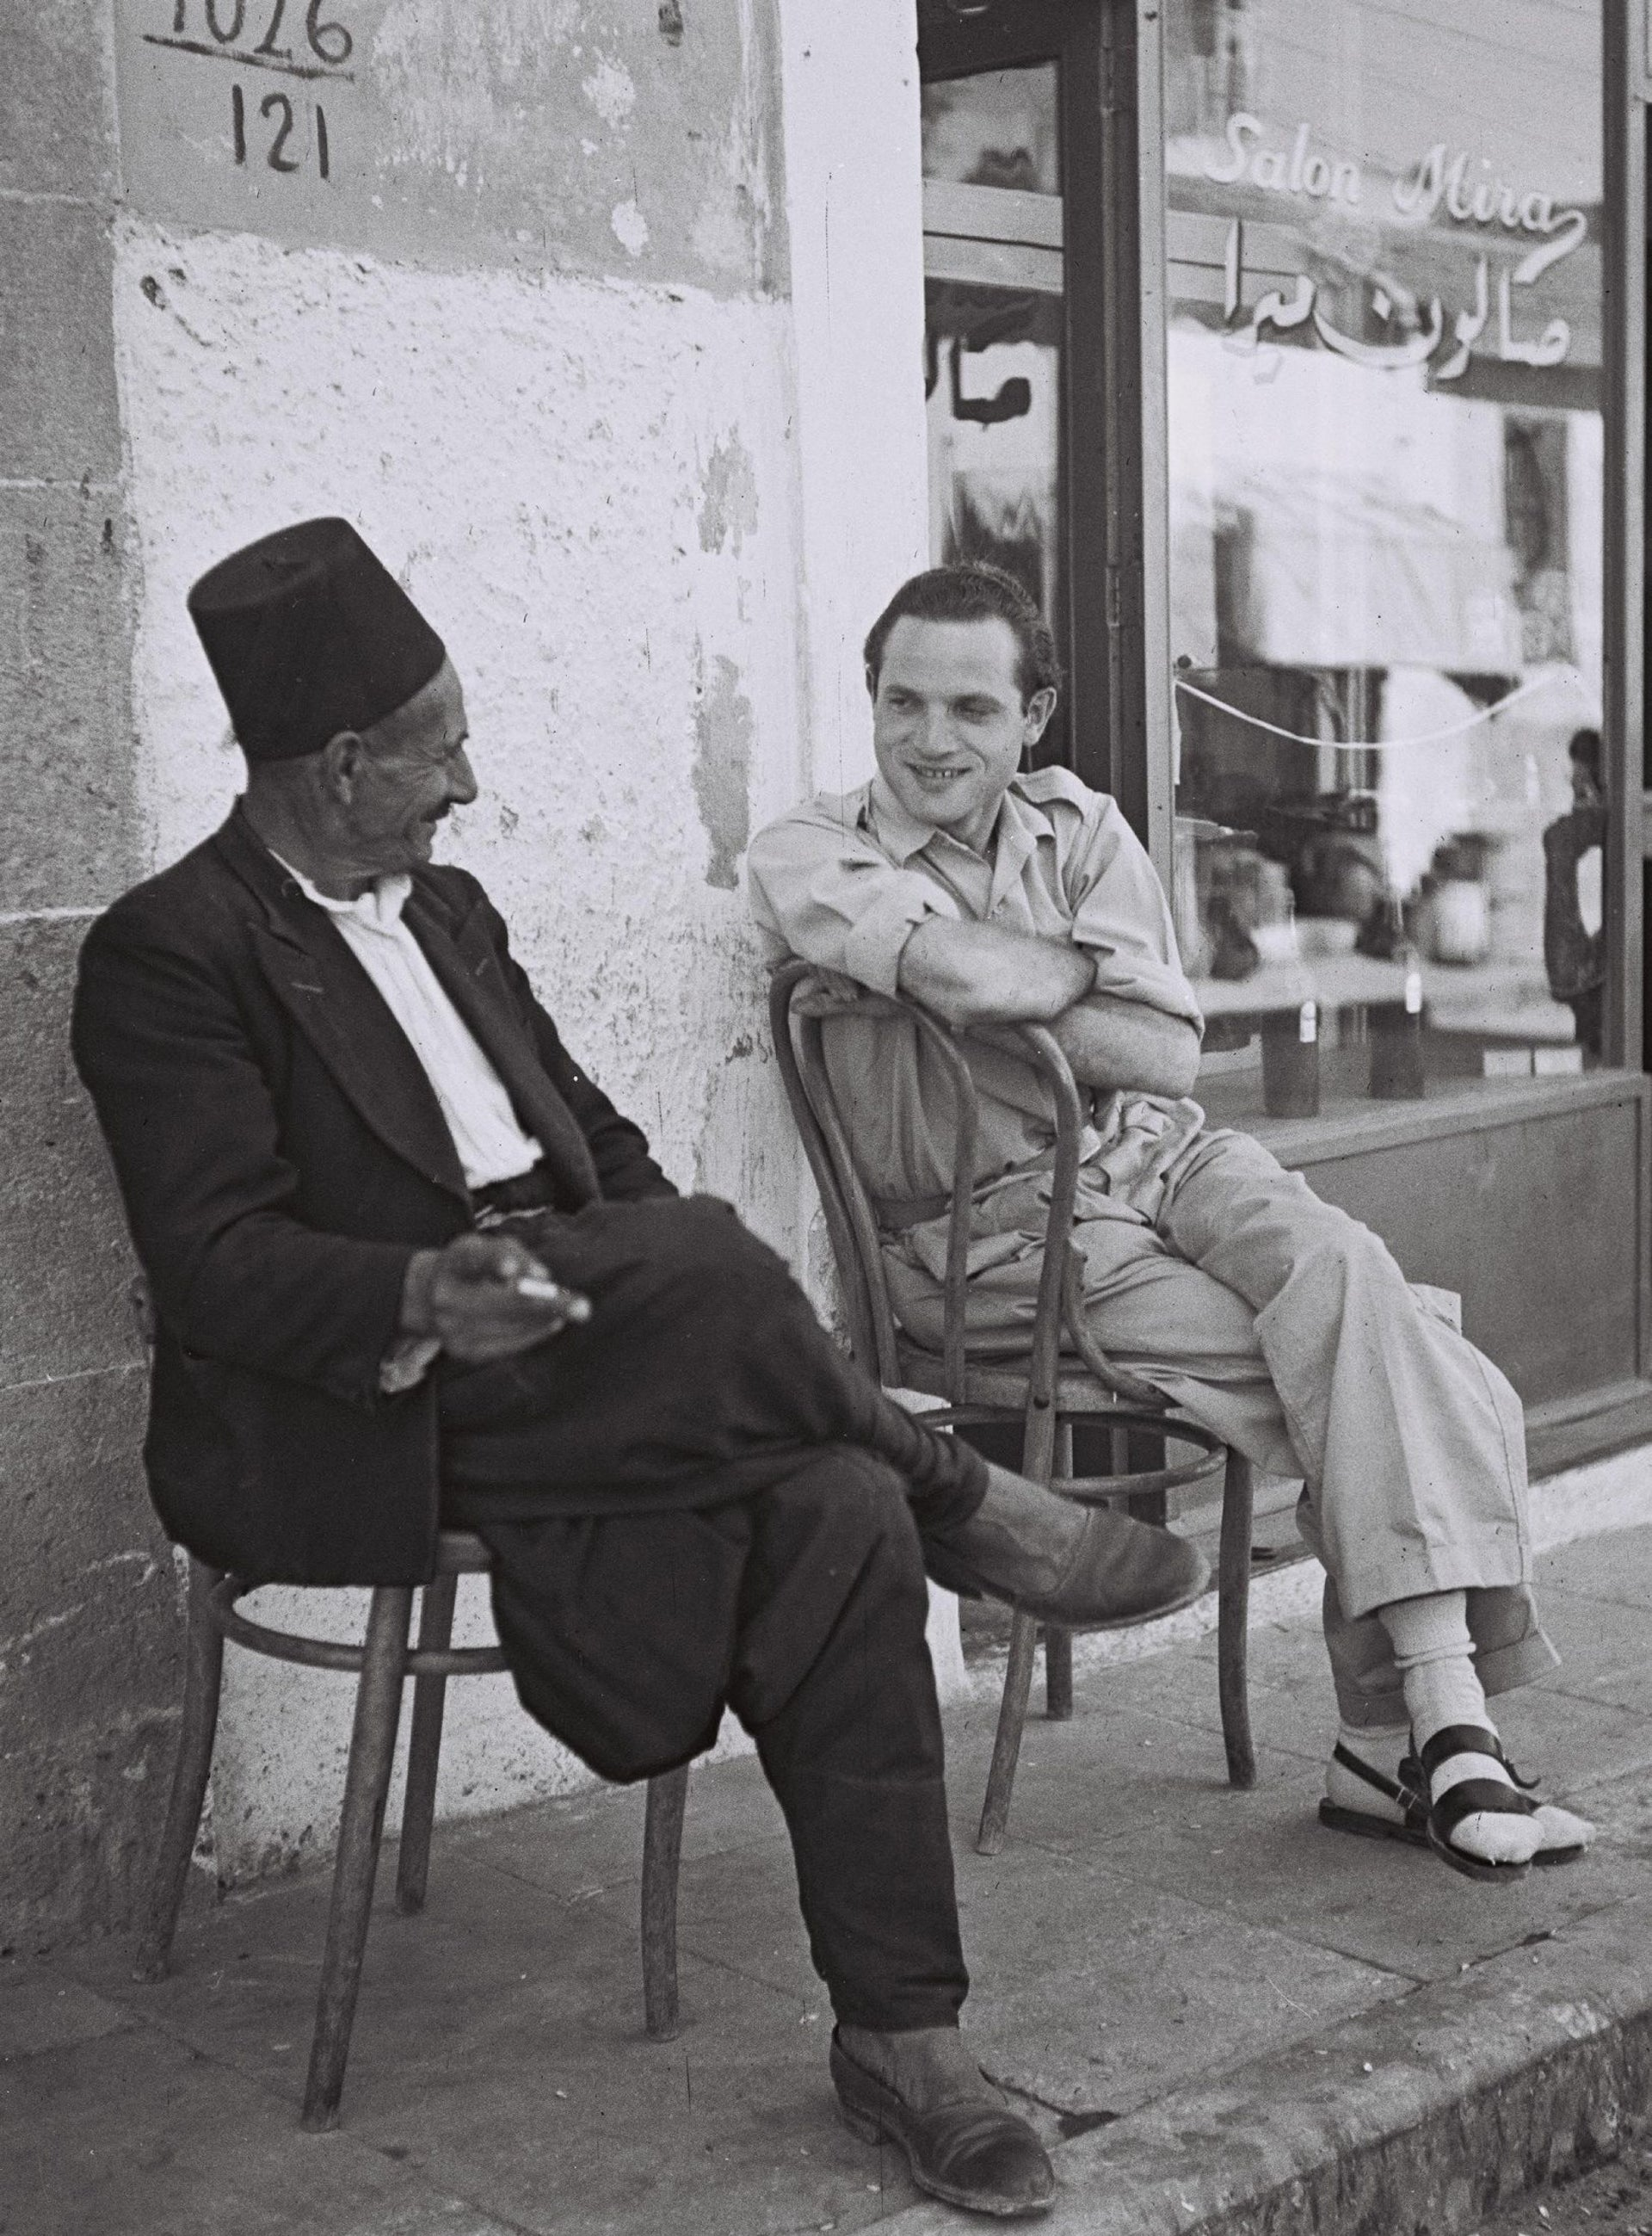 An immigrant from Bulgaria chatting with an Arab man in Jaffa, 1949.